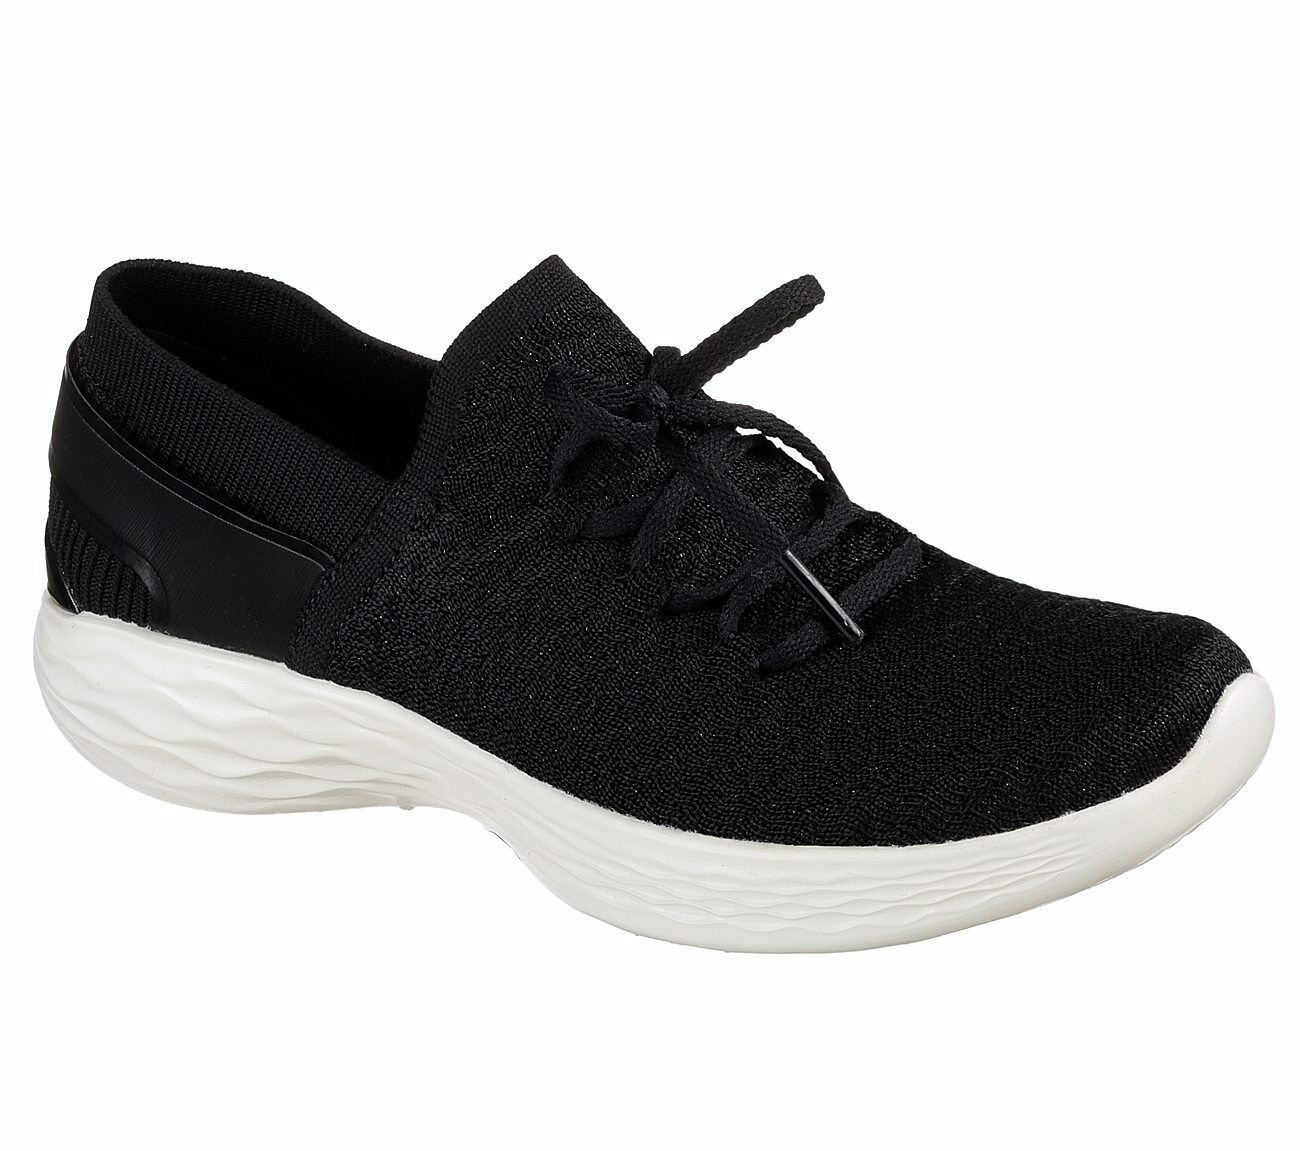 Zapatos promocionales para hombres y mujeres NEU SKECHERS Damen Sneakers Turnschuhe Walking YOU - BEGINNING Schwarz